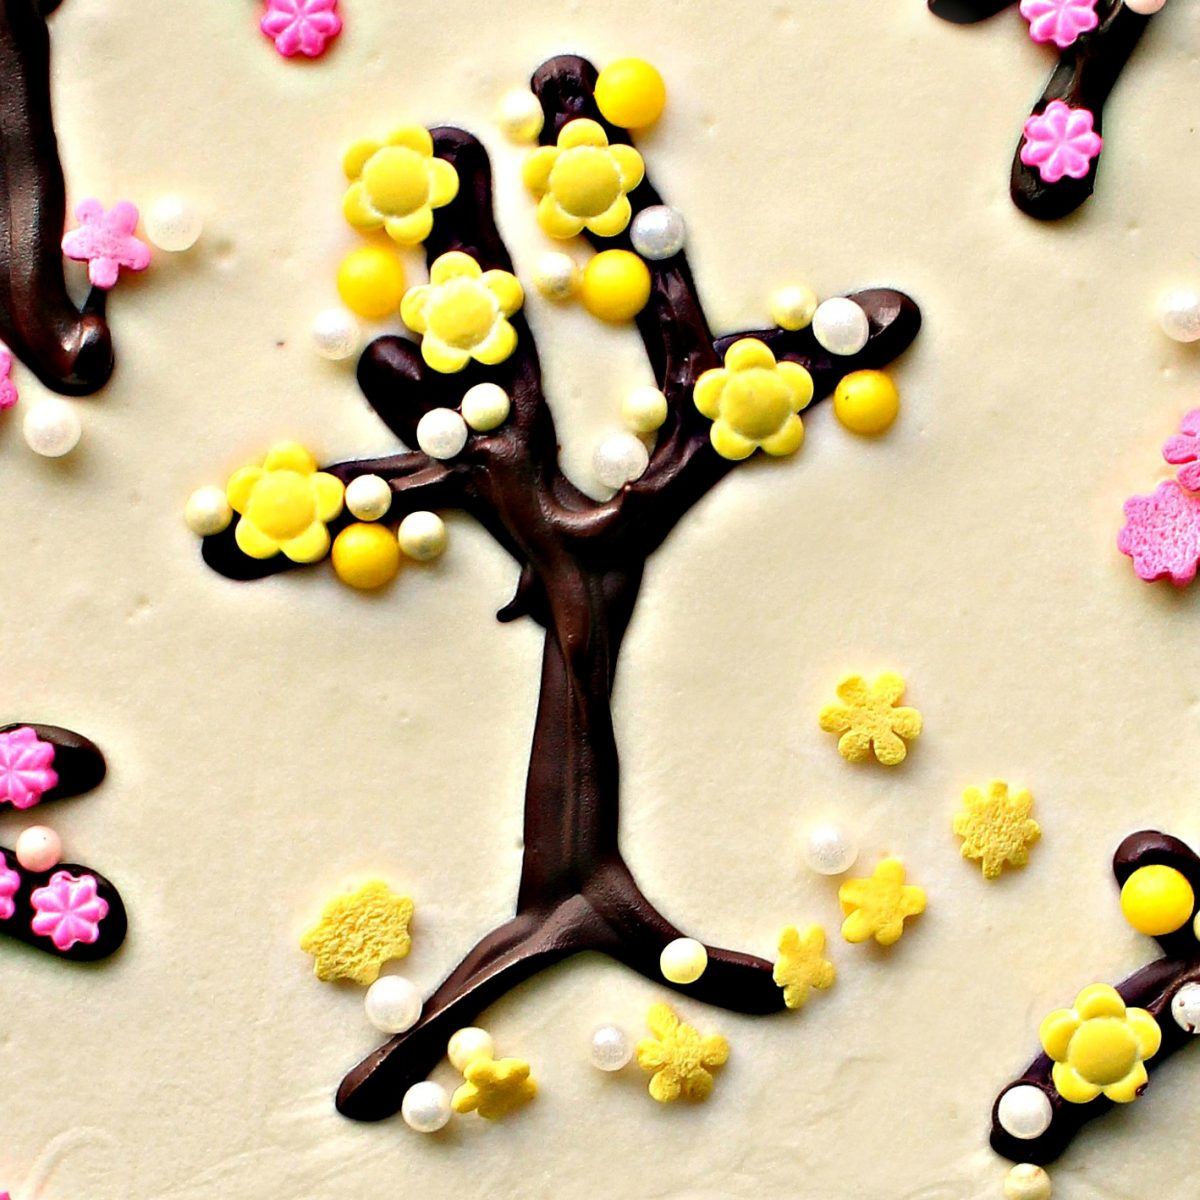 Closeup of piped chocolate tree trunk with yellow flower sprinkles and ball sprinkles.